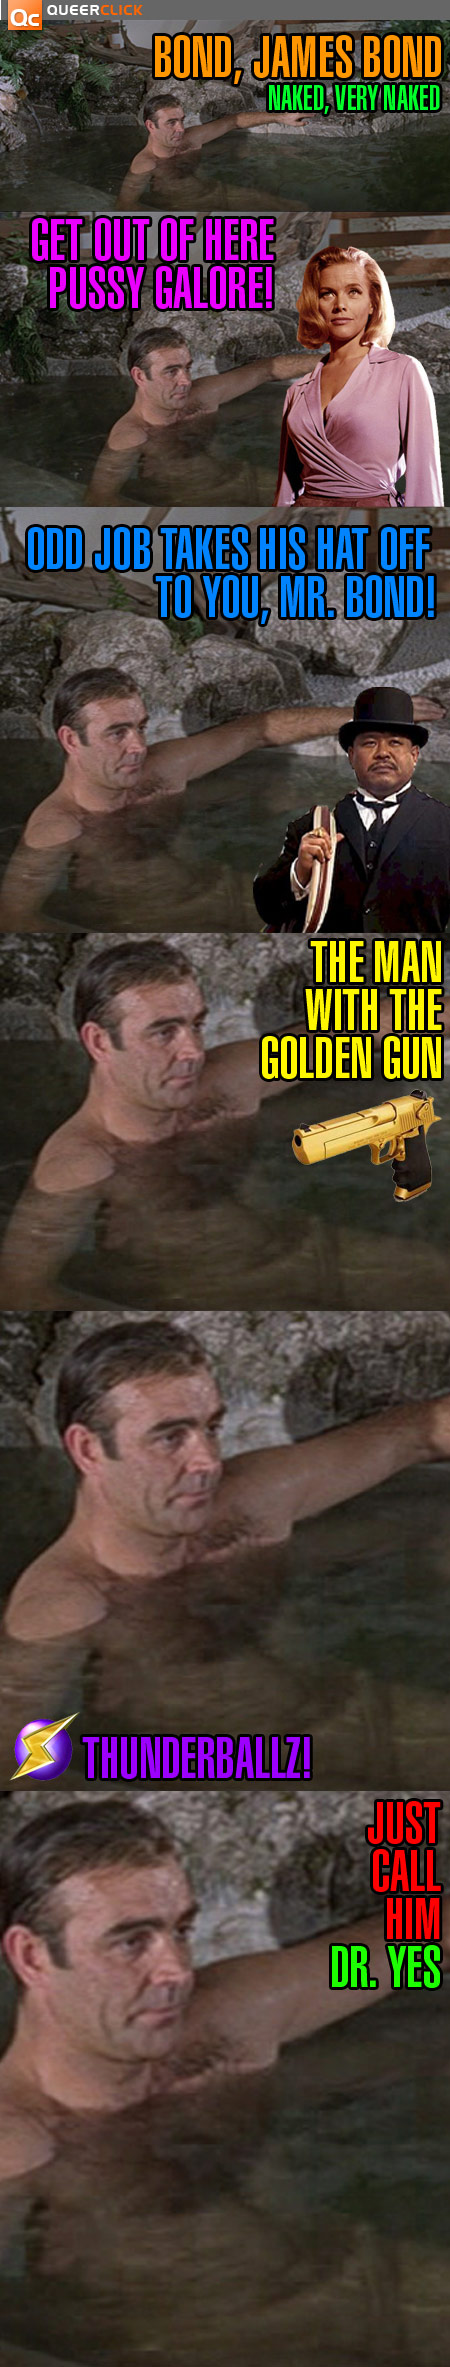 Sean Connery's James Bond Has 007 Inches